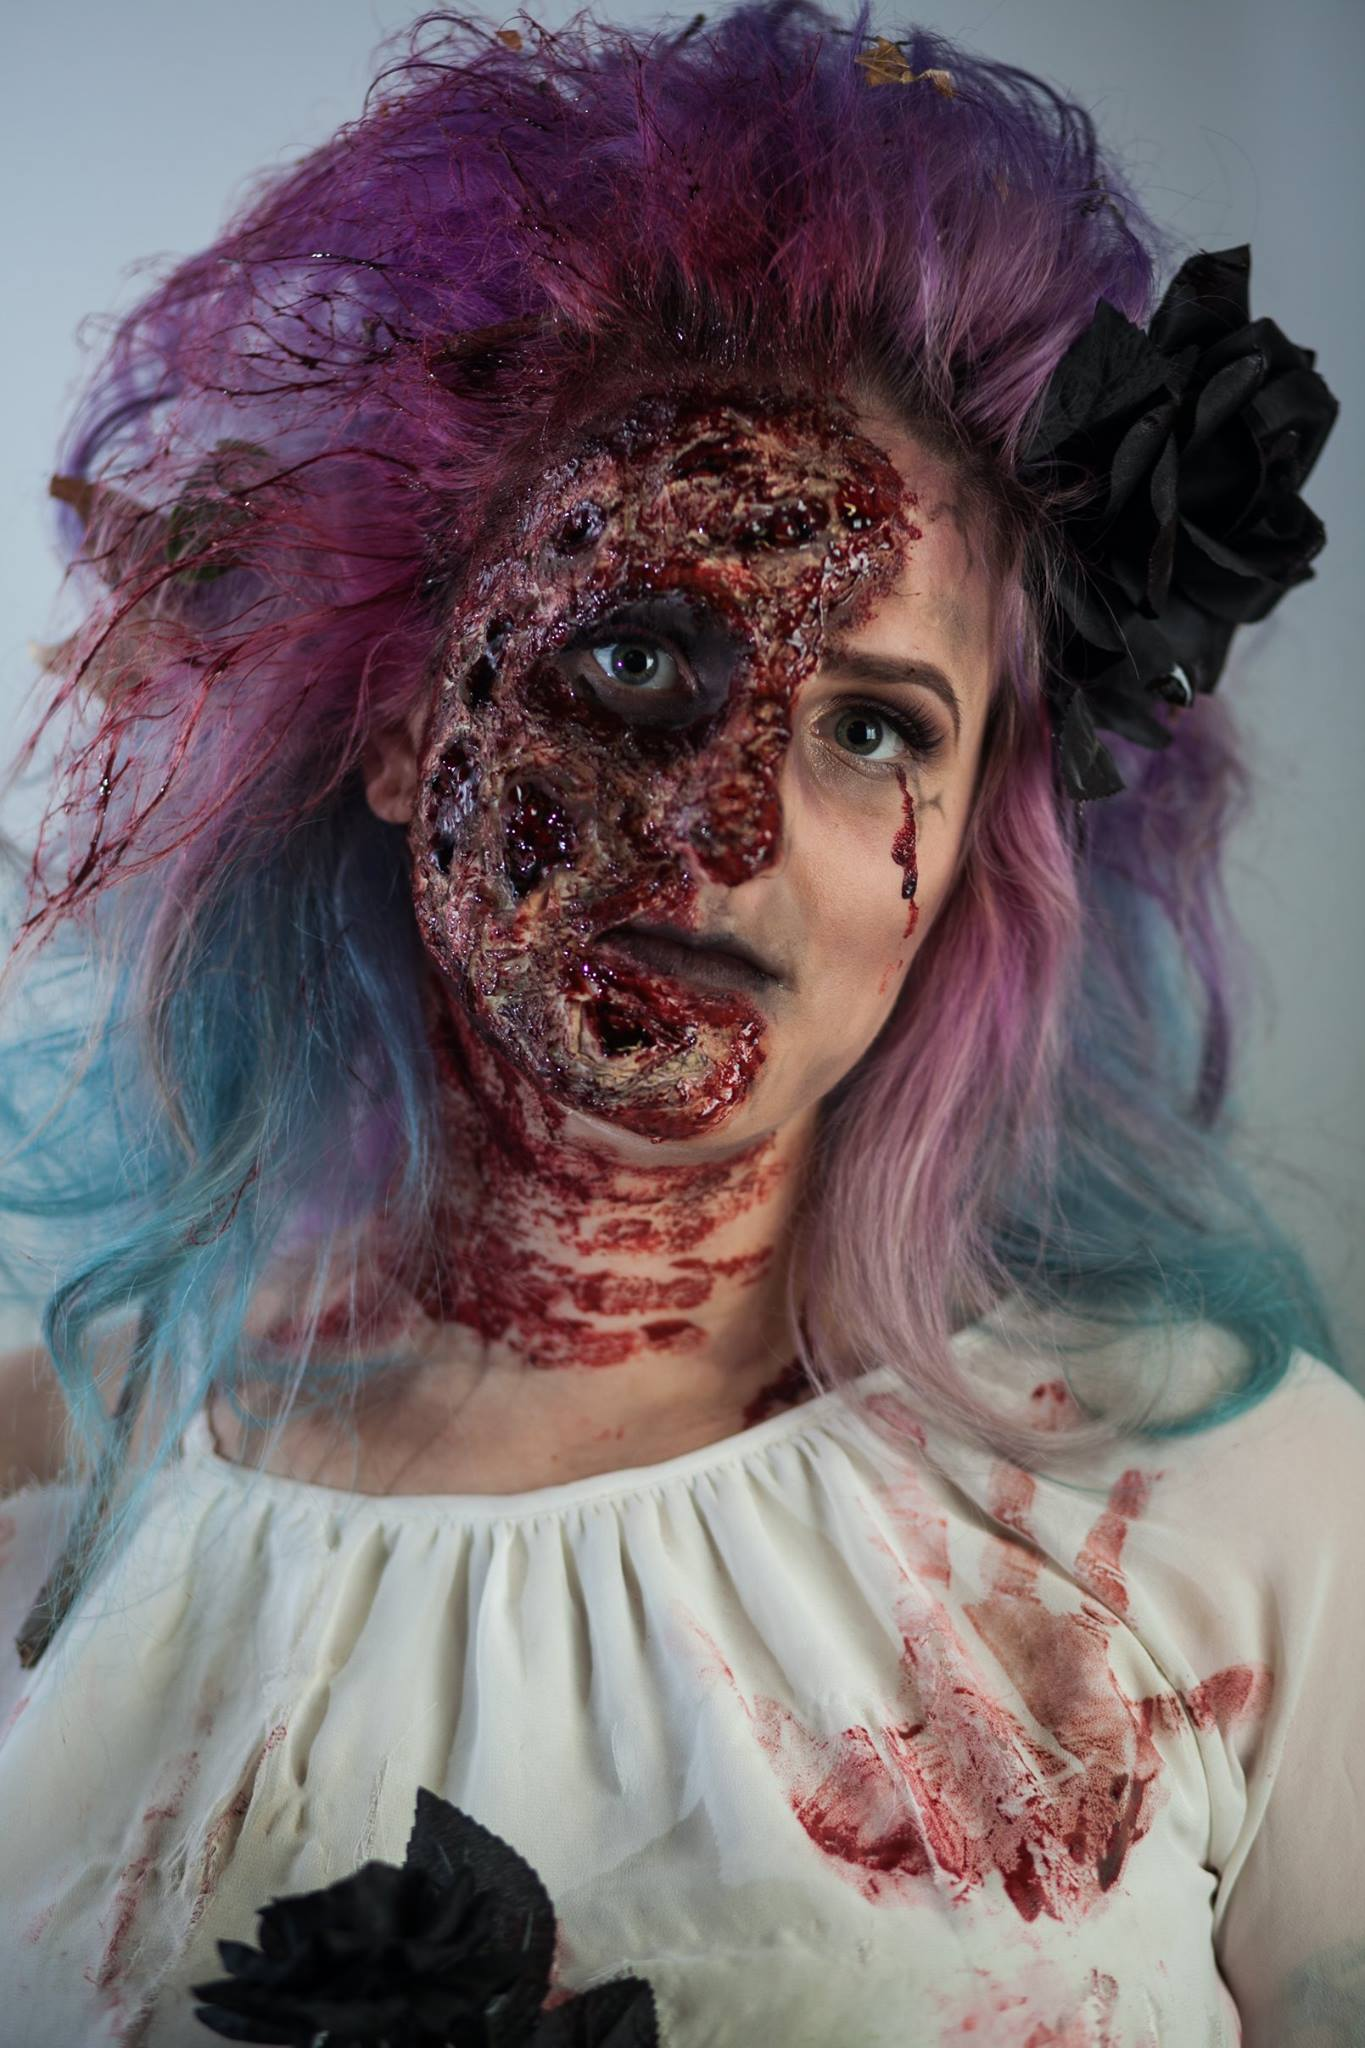 Close-up of zombie bride Halloween makeup